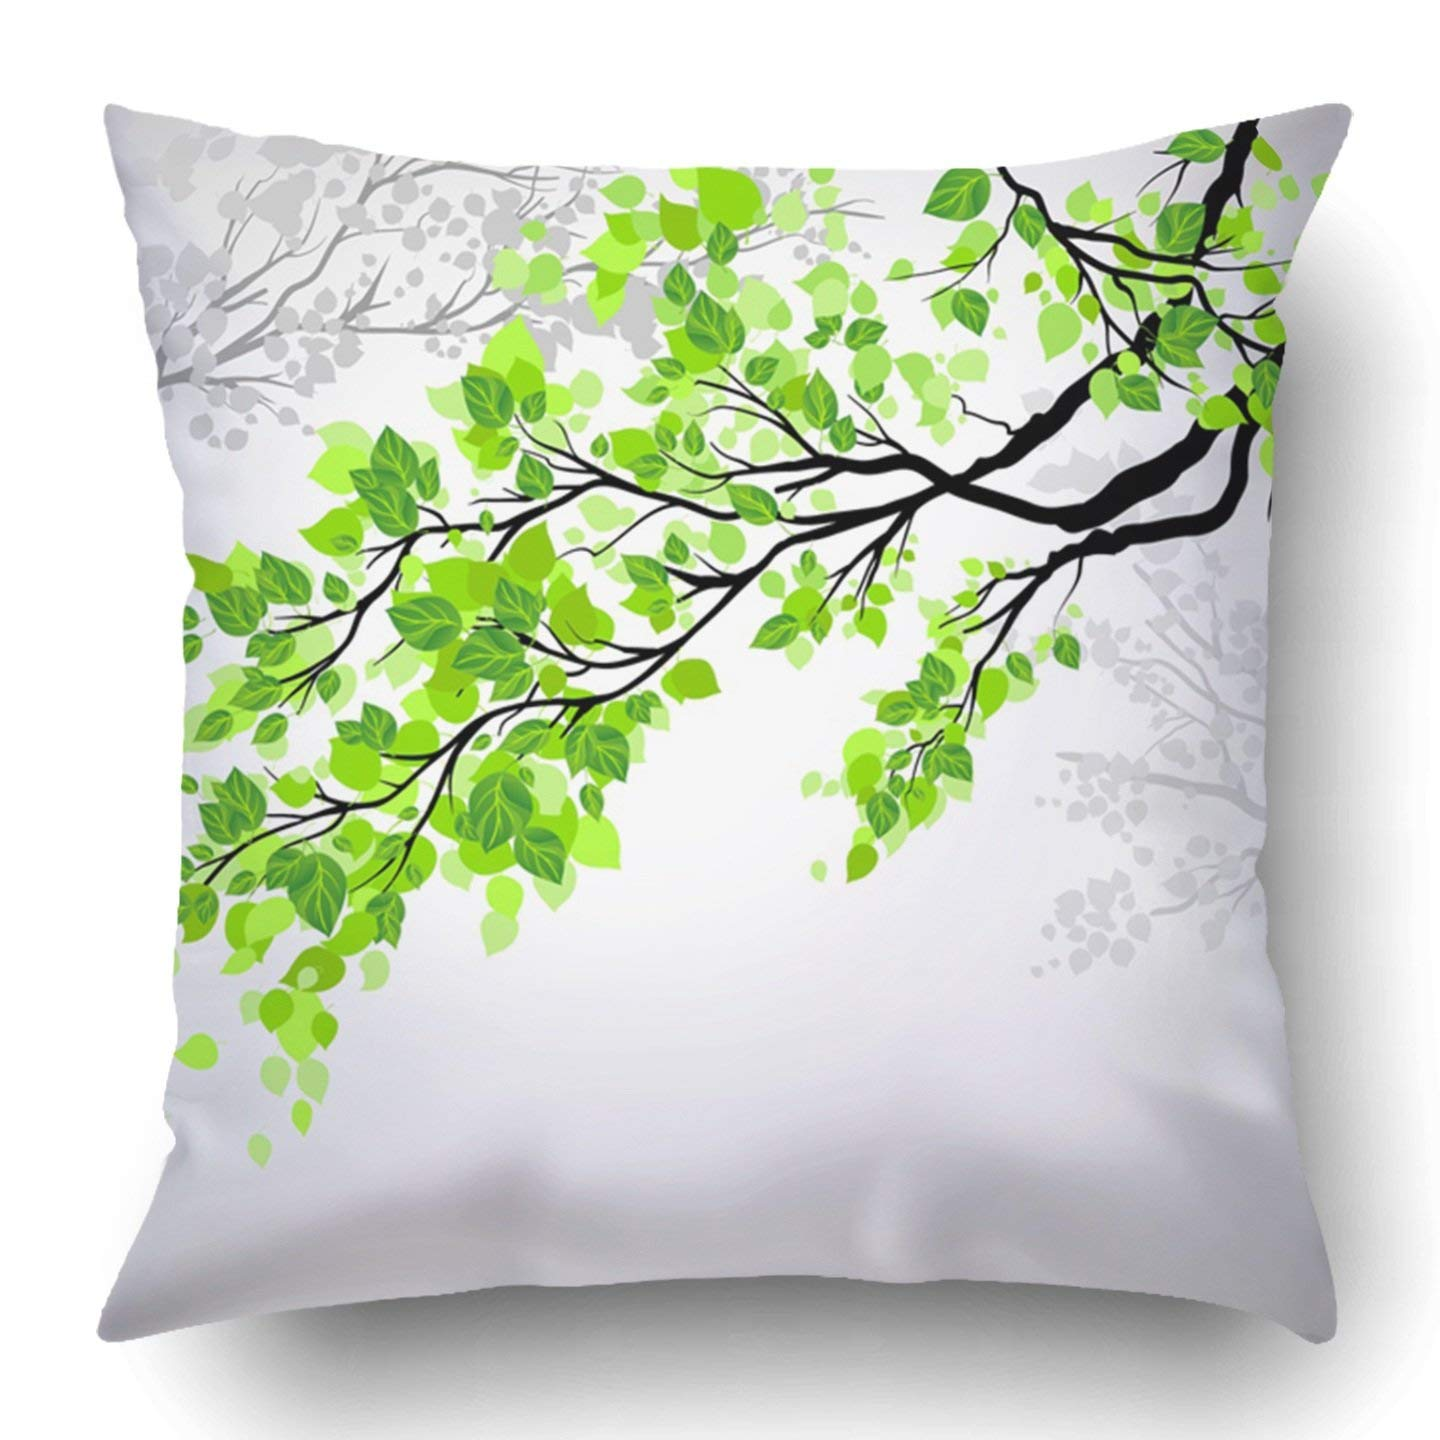 WOPOP Green Tree Branch with Leaves Leaf Silhouette Spring Woods Beauty Bright Brightly Pillowcase 18x18 inch